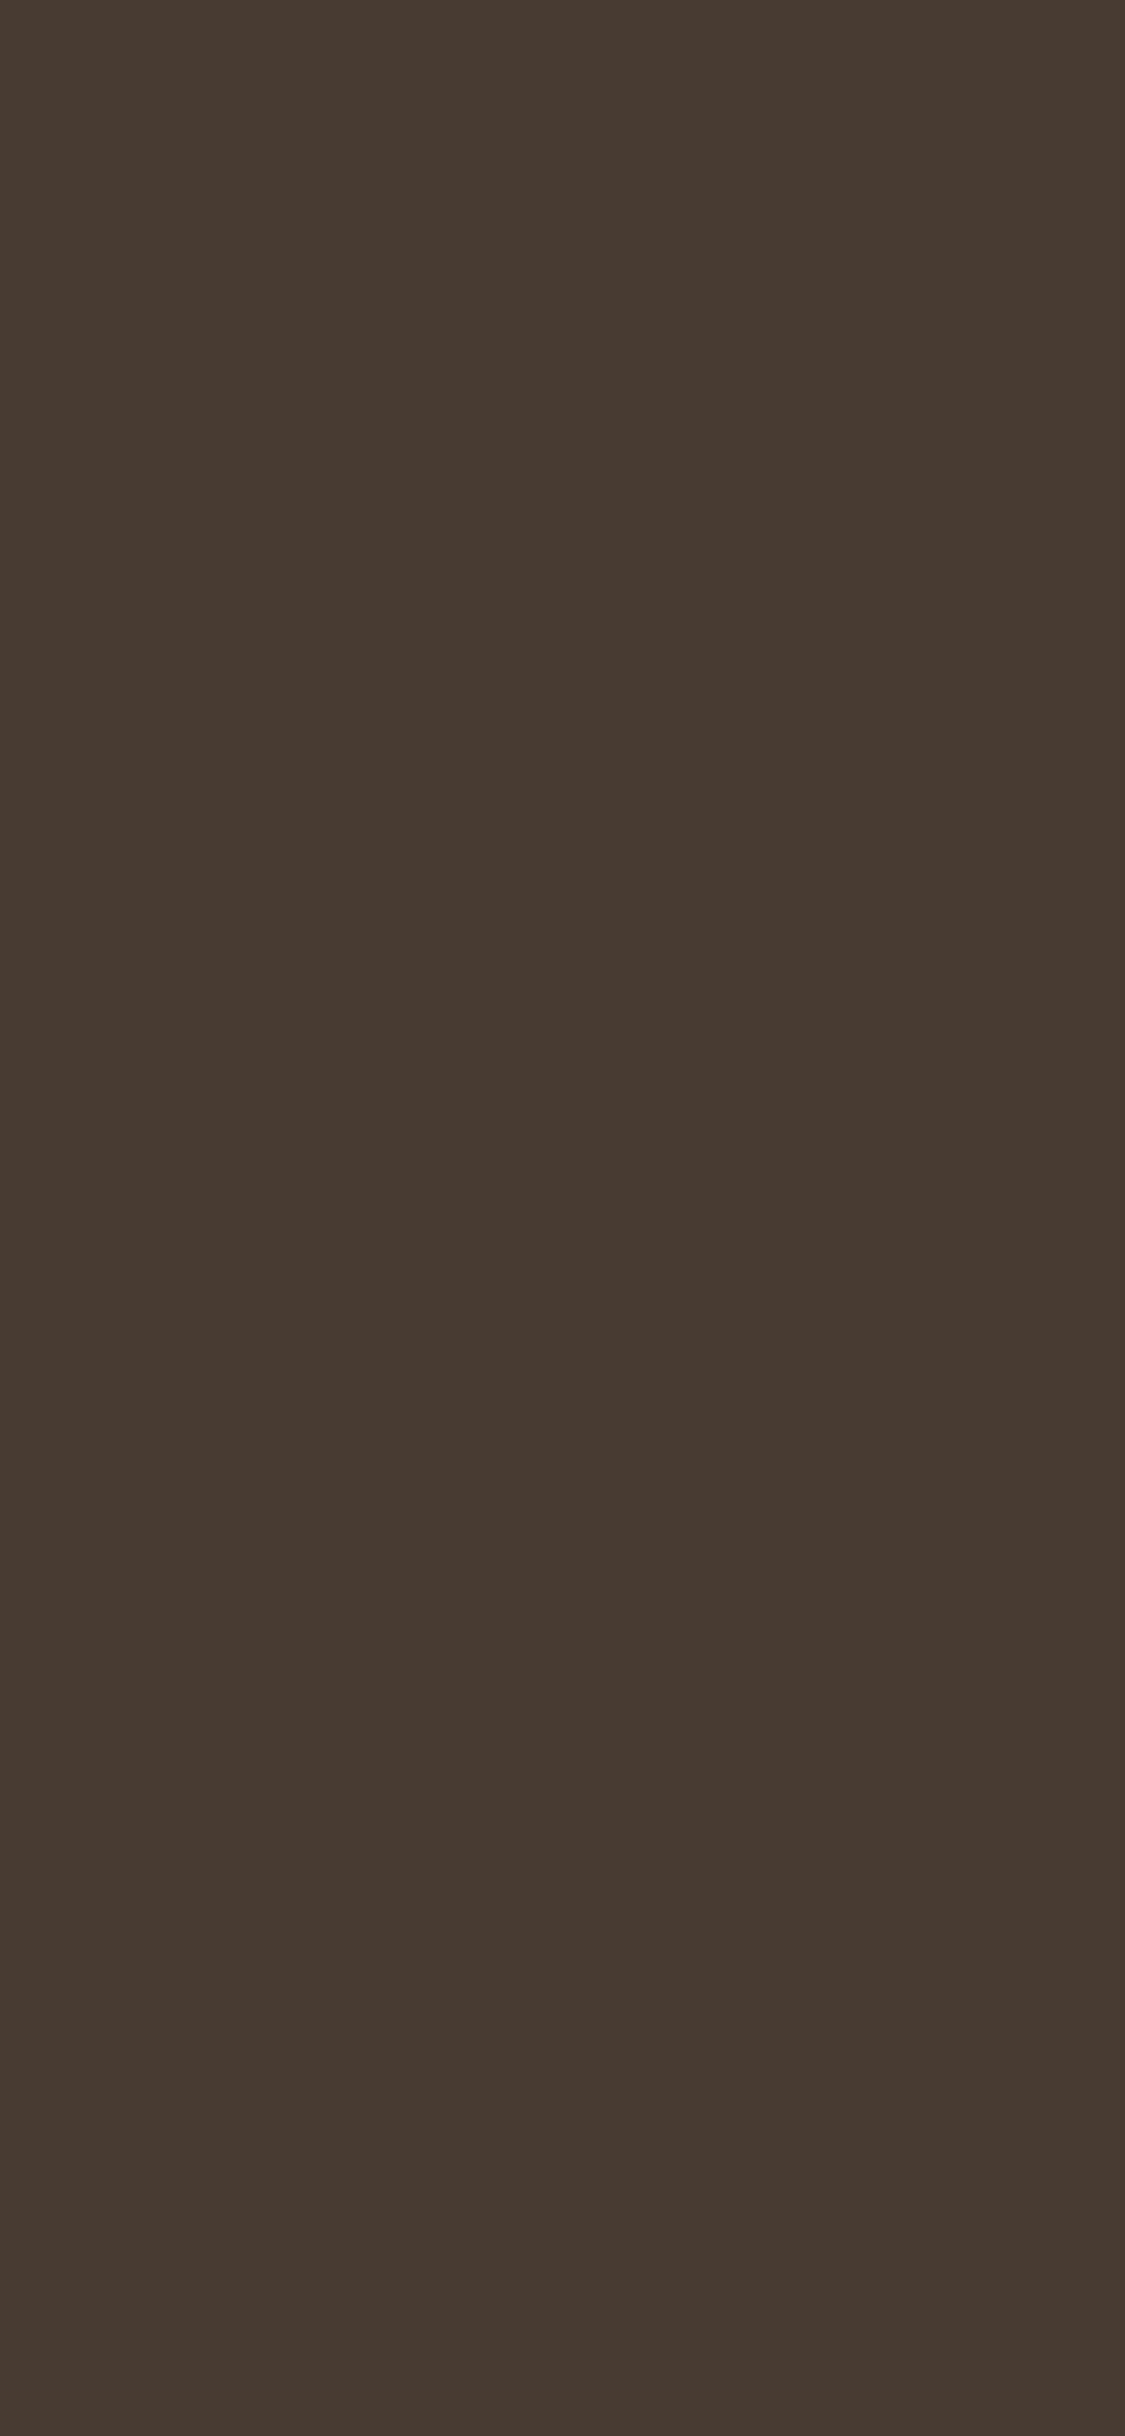 1125x2436 Taupe Solid Color Background